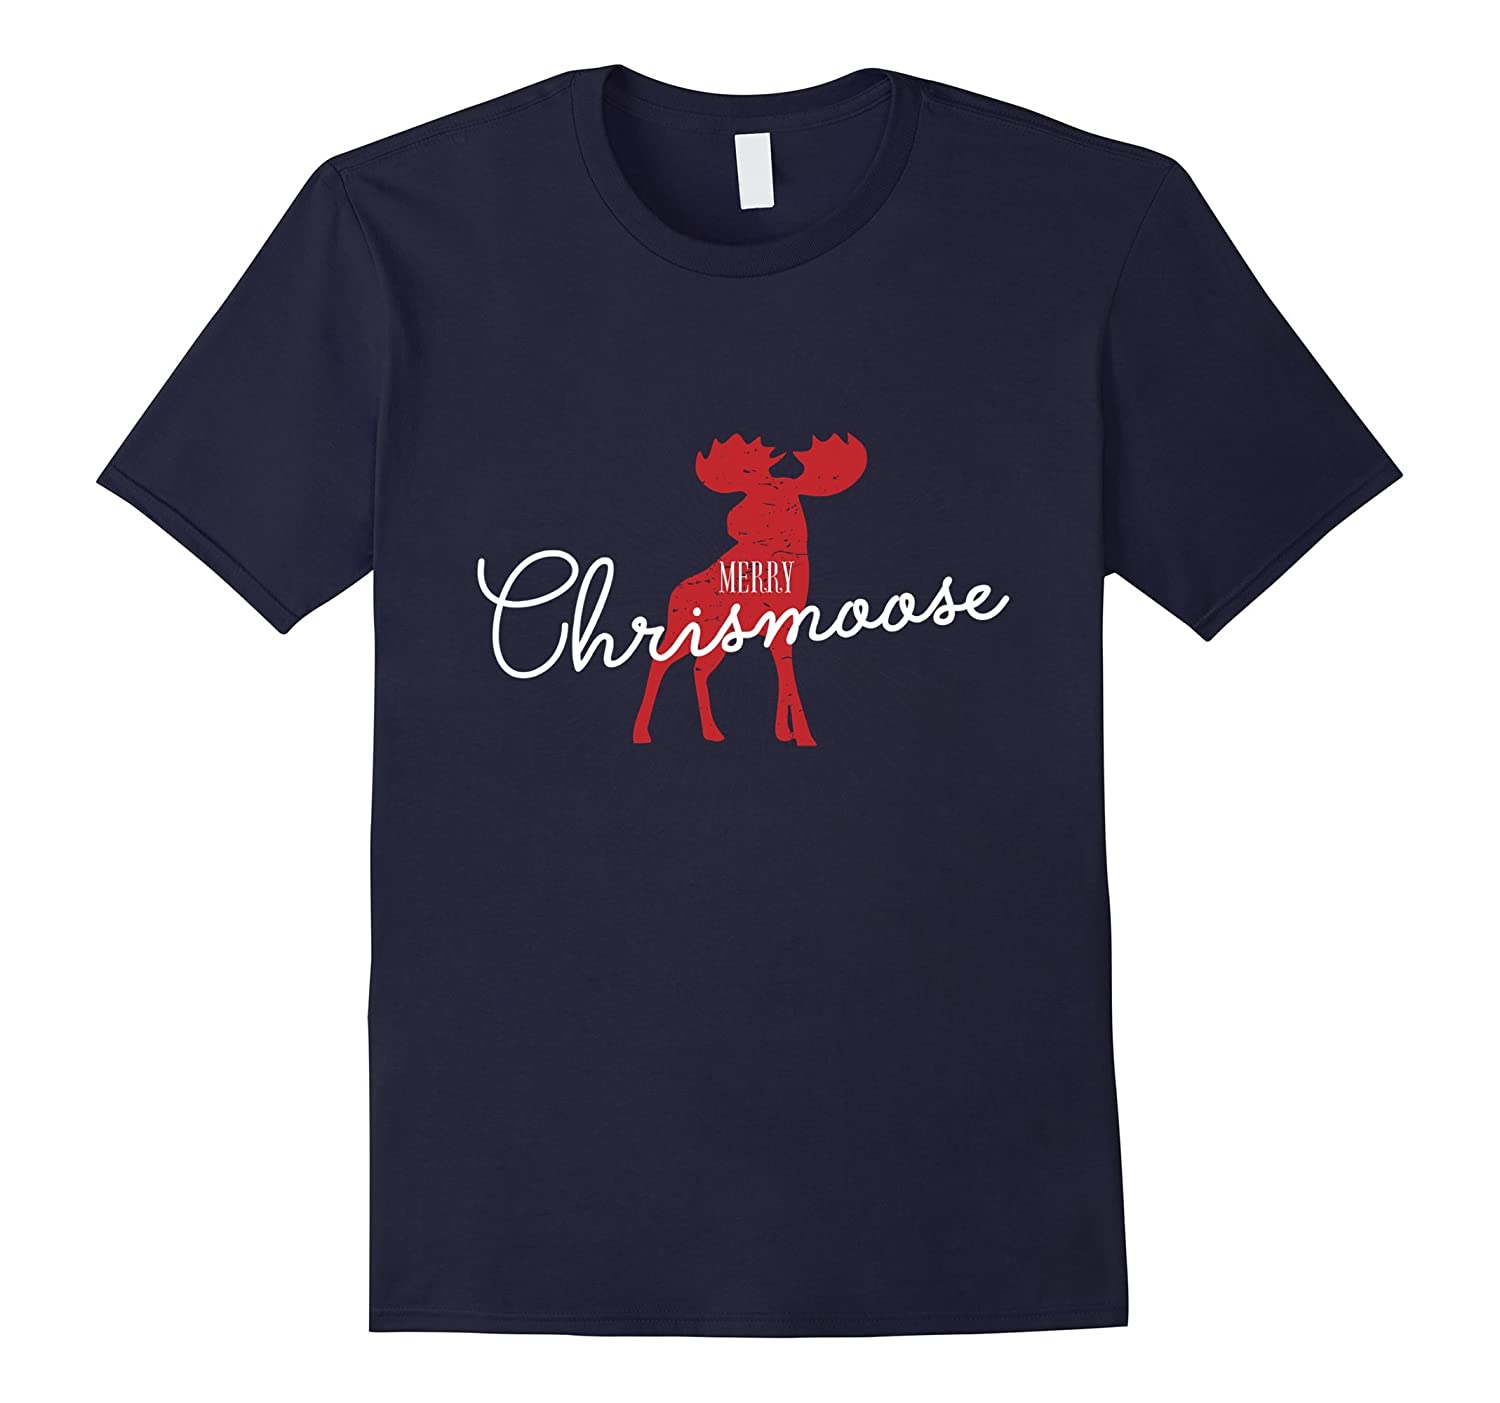 The Merry Chrismoose Christmas Moose Funny Gift T-Shirt